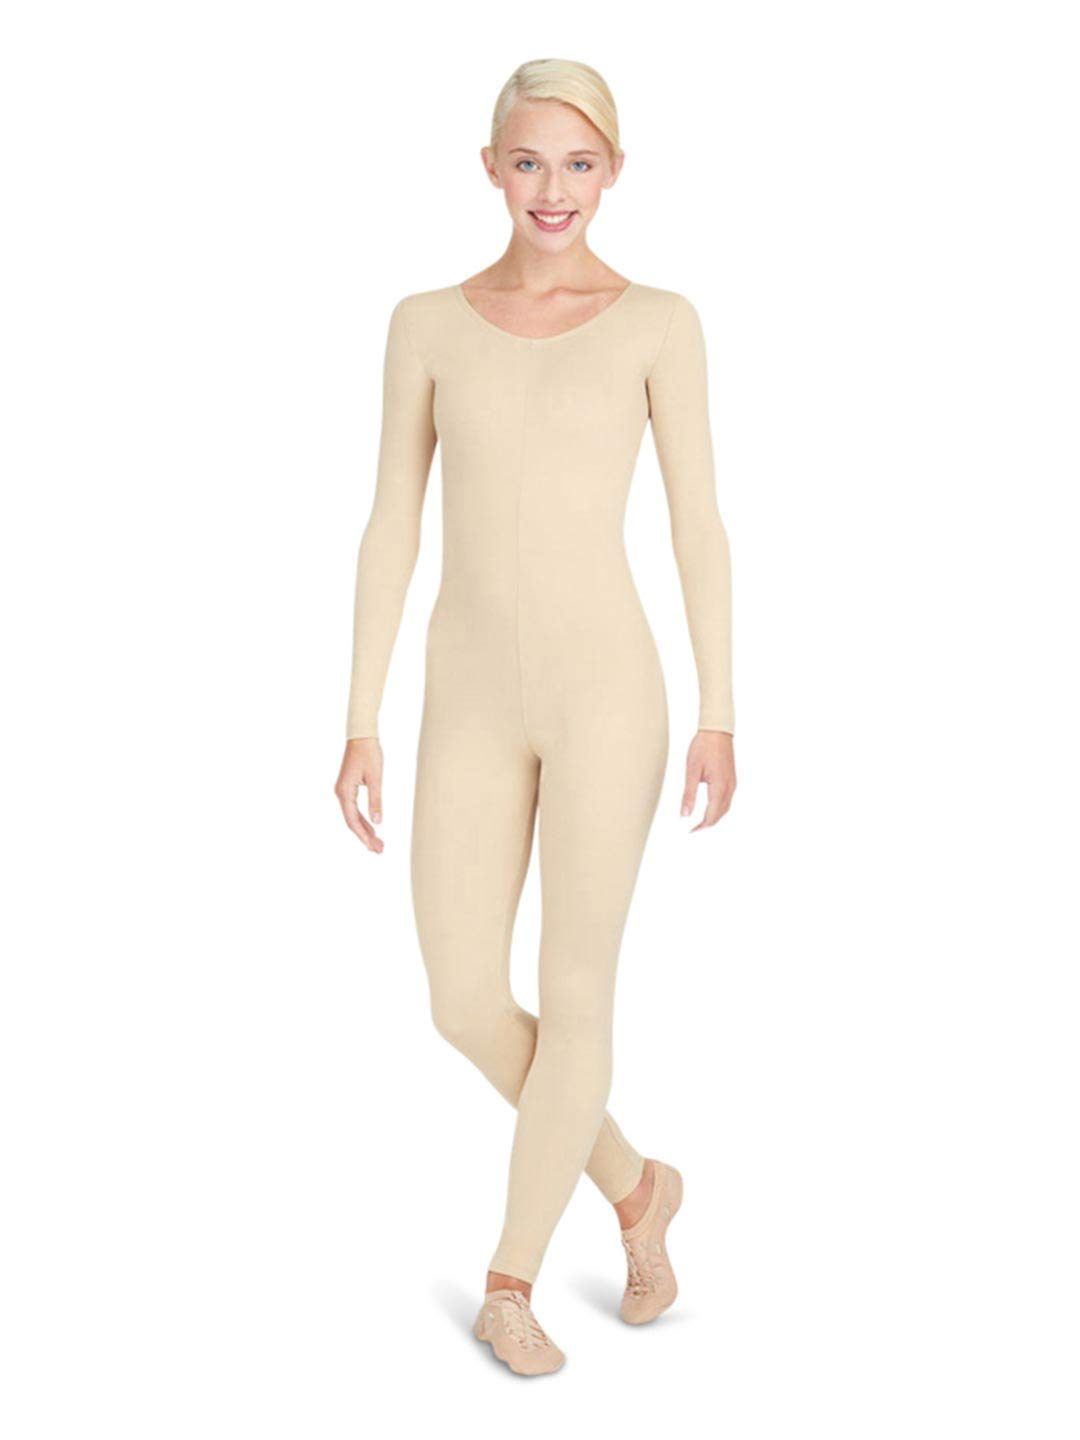 Capezio Women's Team Basic Long Sleeve Unitard, Nude by Capezio